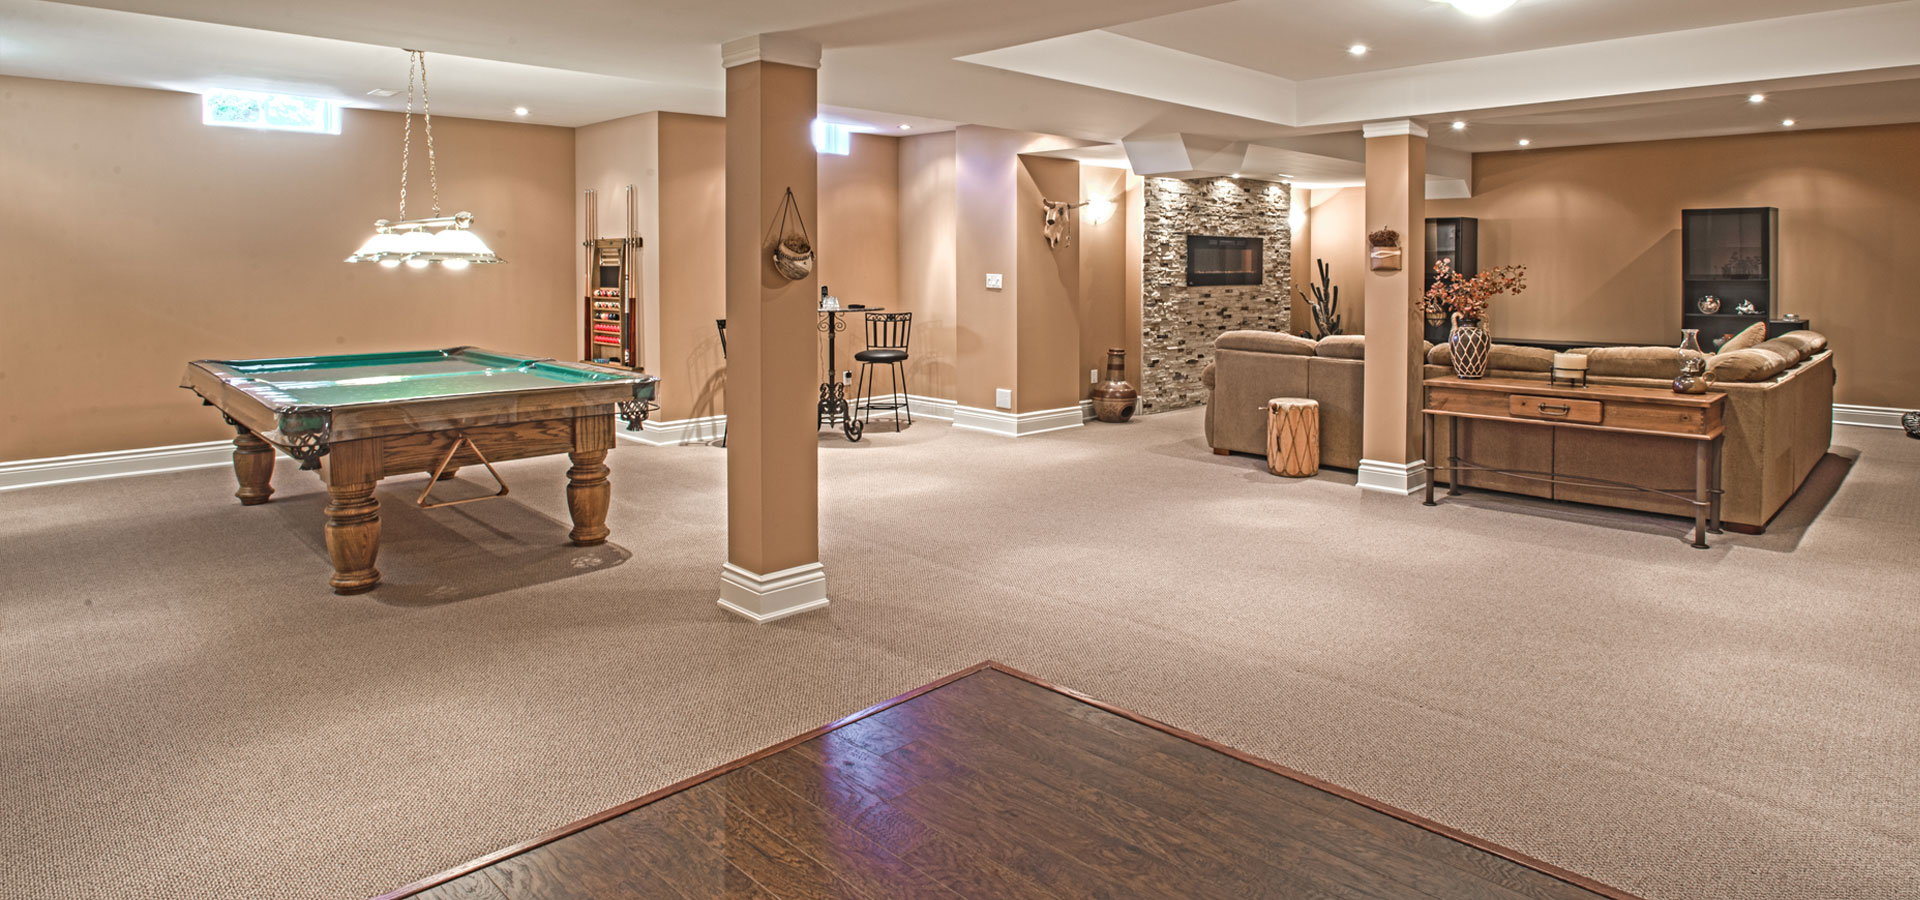 Large open basement with pool table